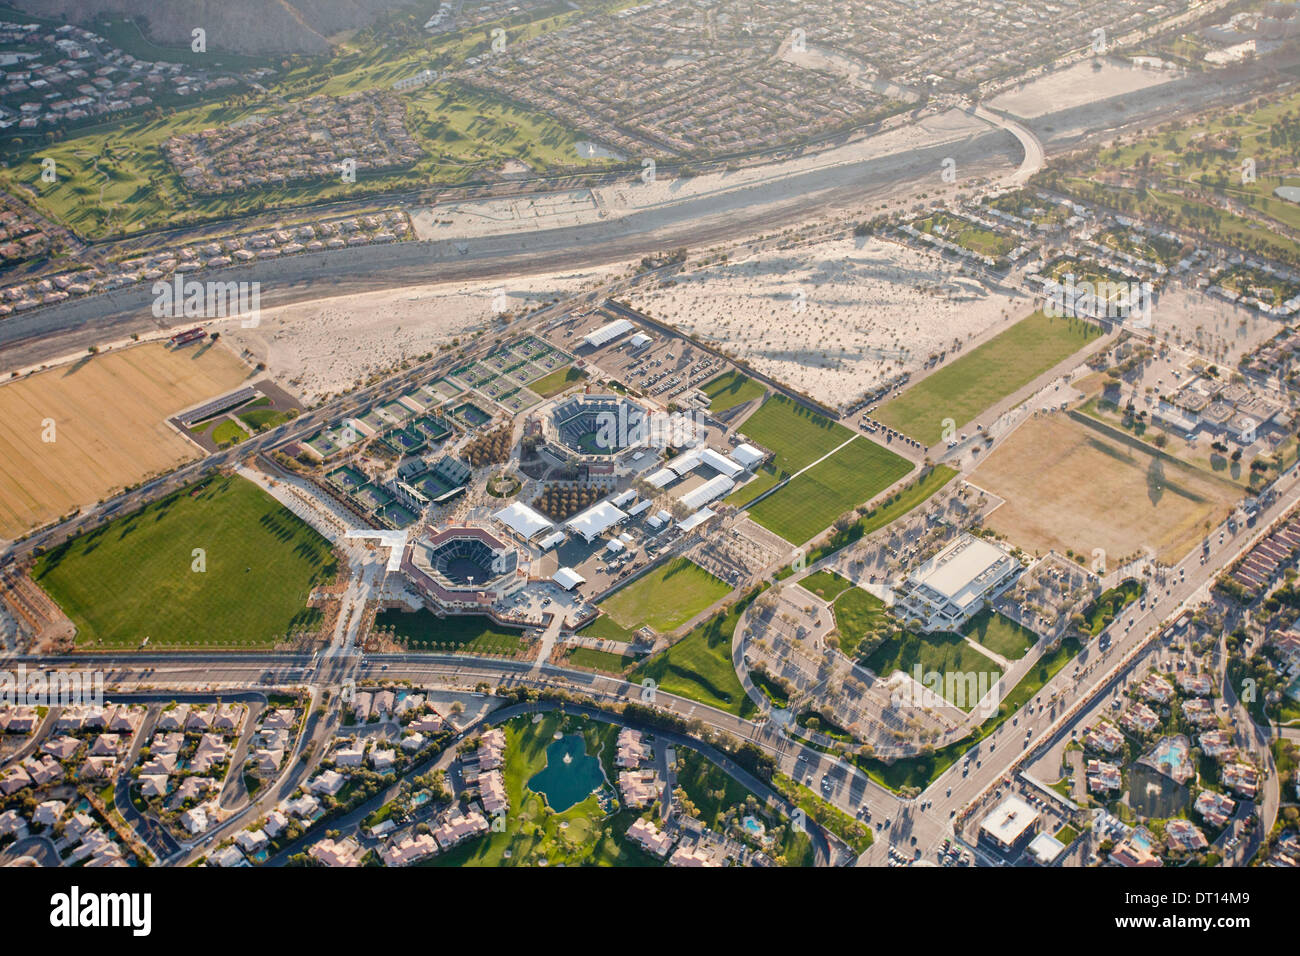 Aerial View Of The Updated And Expanded INDIAN WELLS TENNIS GARDENS, Idian  Wells, California, USA